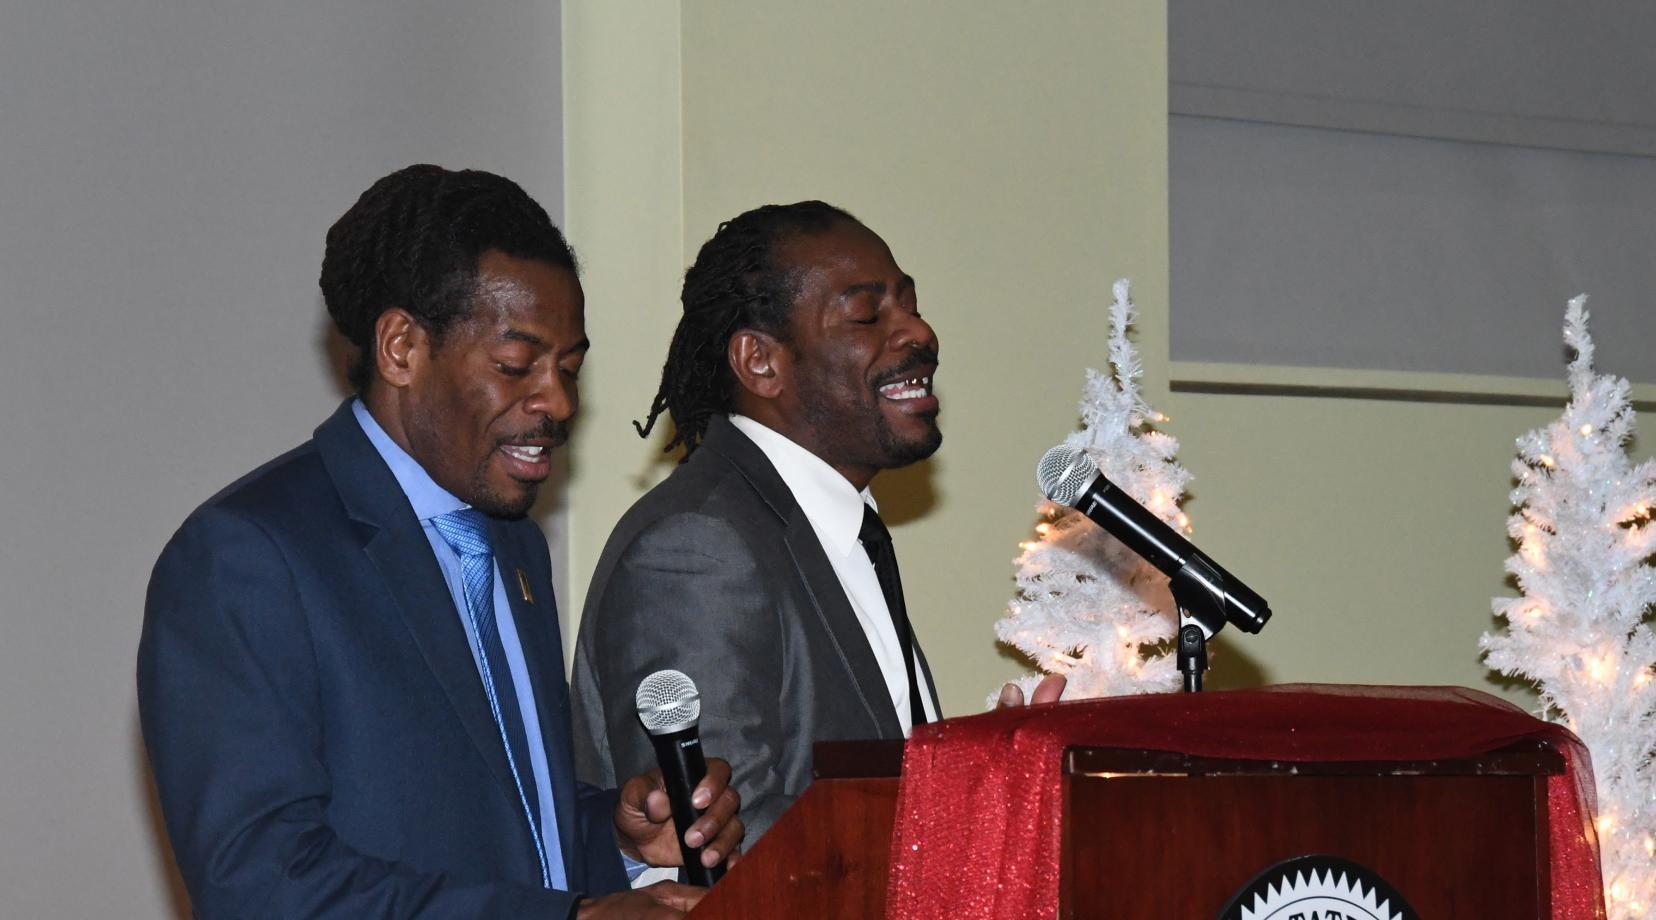 The Twin Poets -- University alumnus and Delaware Poet Laureates -- blessed the attending graduating seniors with some inspiring spoken words works.